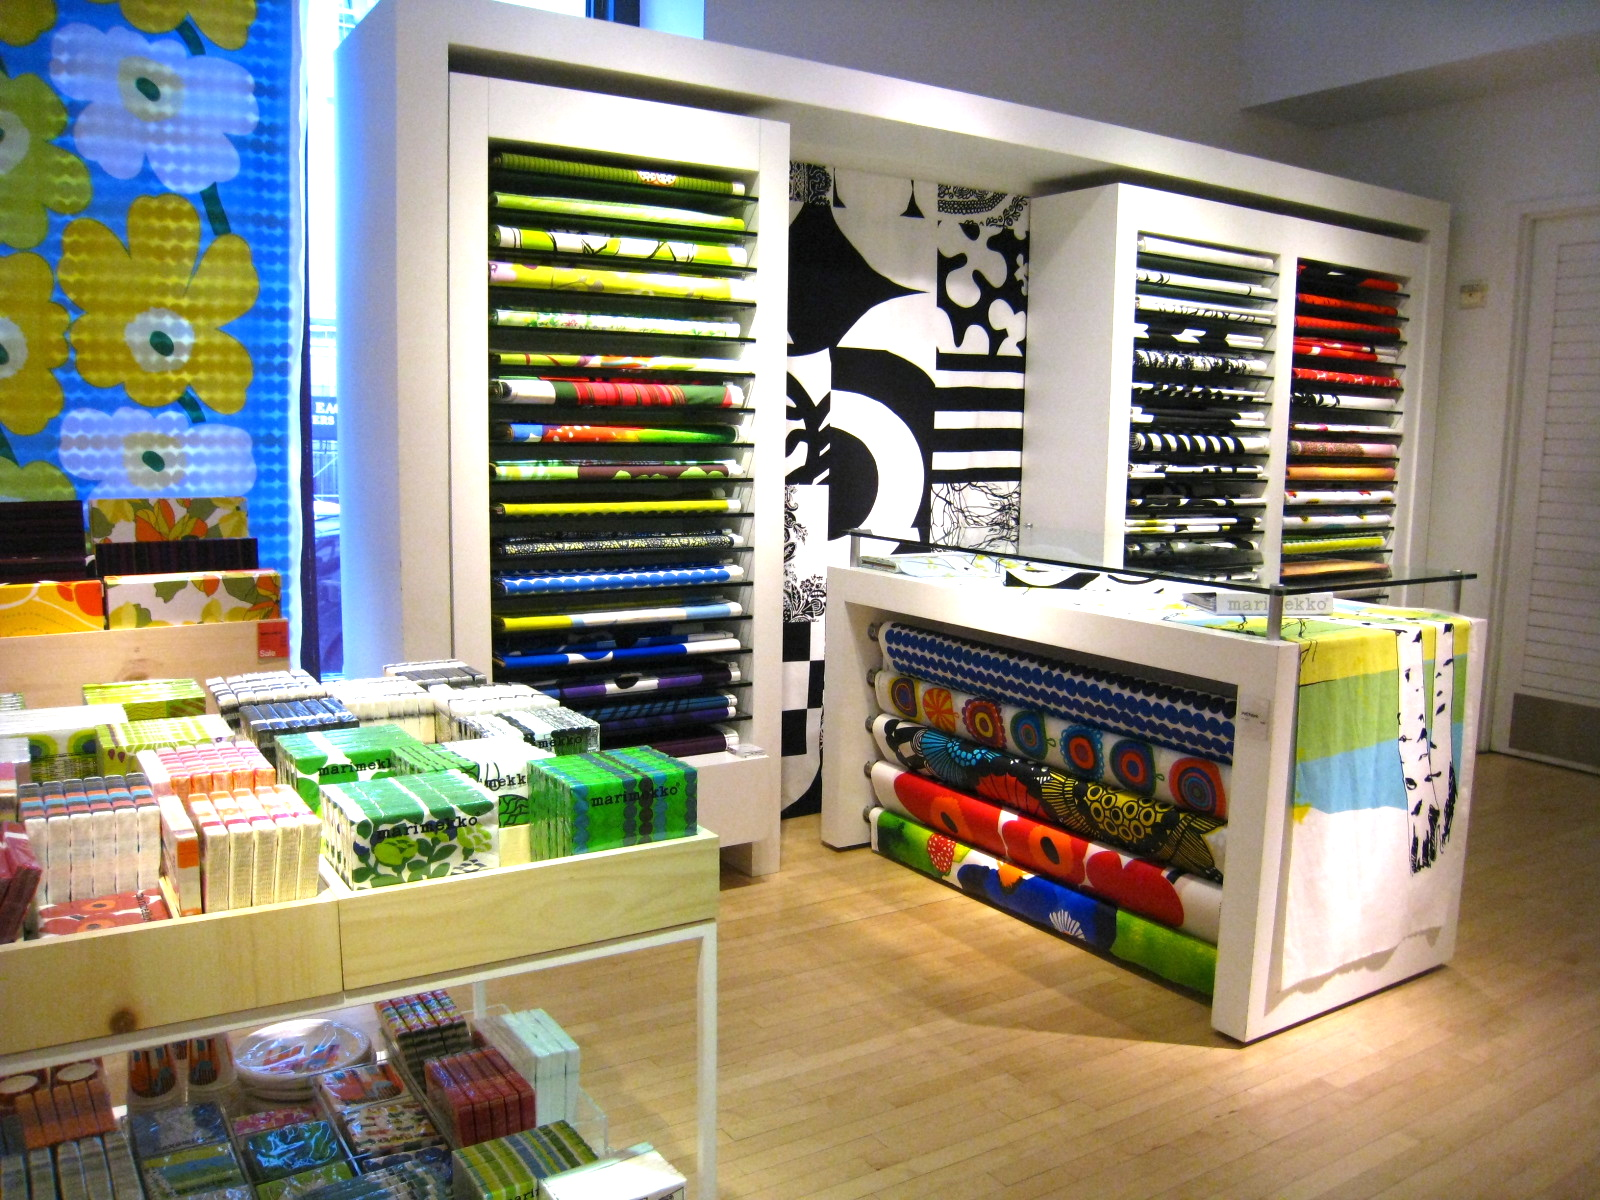 Clearlytangled crate and barrel marimekko store for Designer fabric store